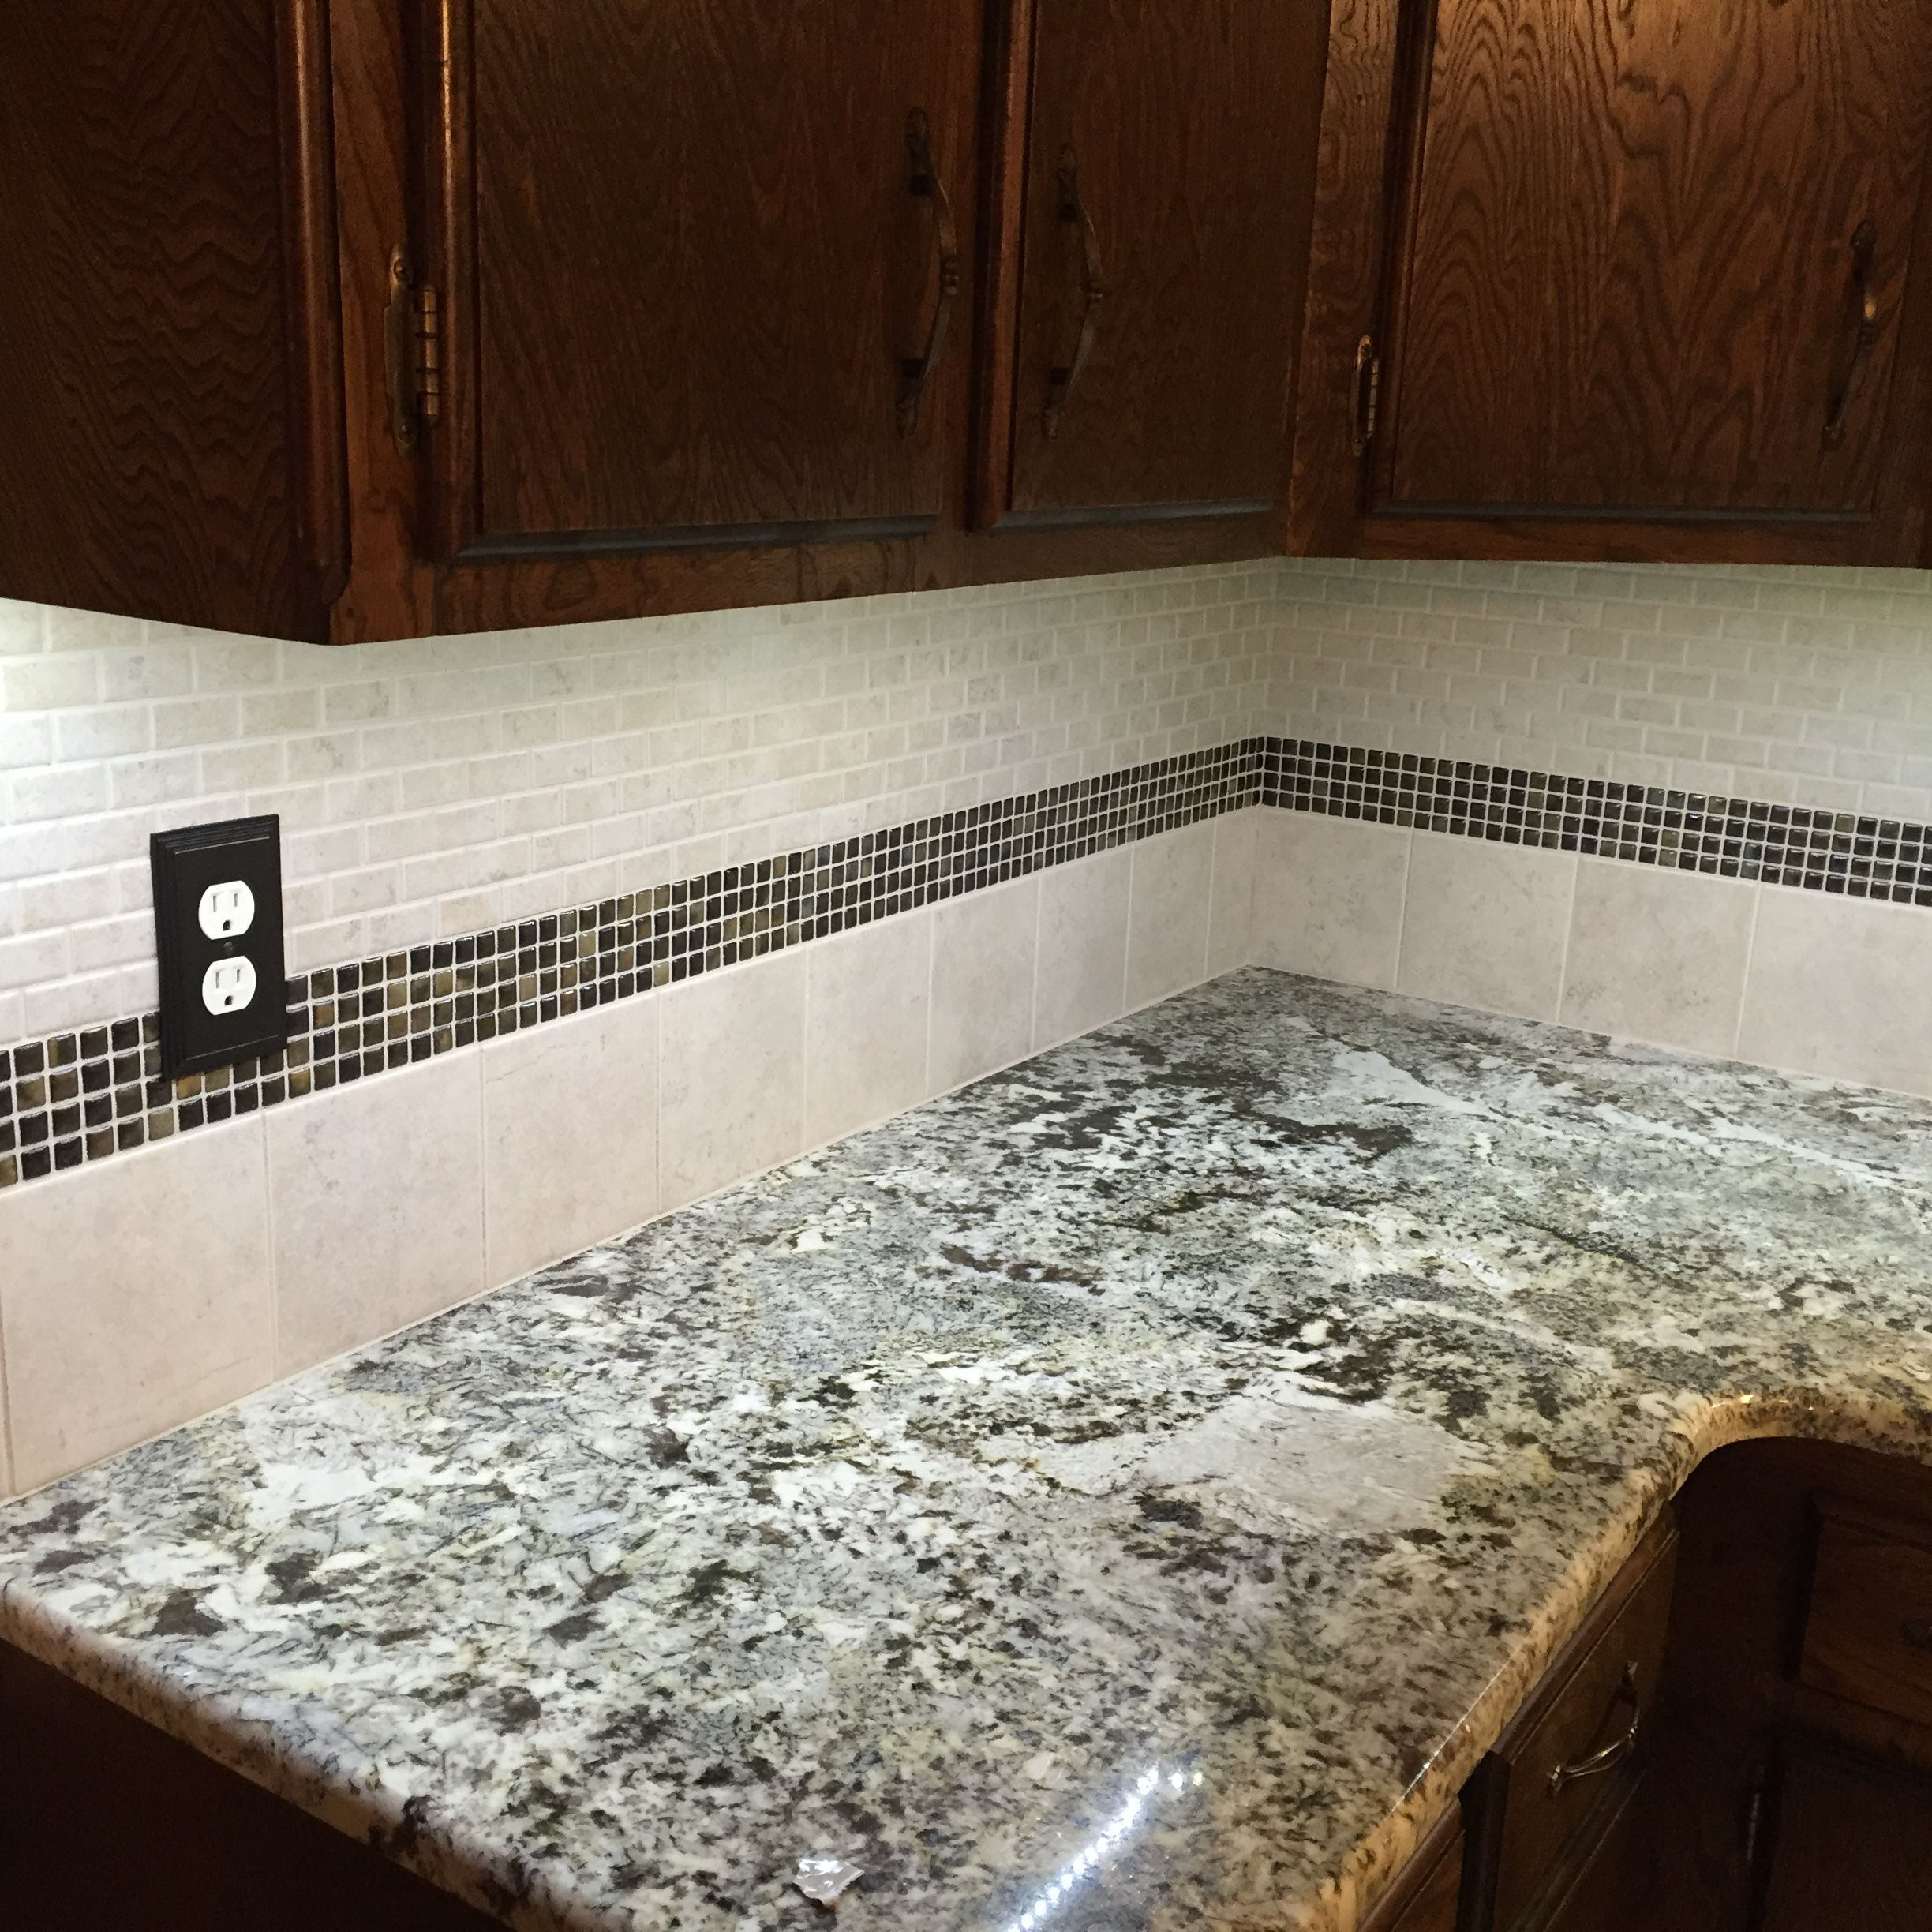 Backsplash Briton Bone mosaic and tile with mosaic strip Umber grout color linen from home Depot Counter is crazy horse granite